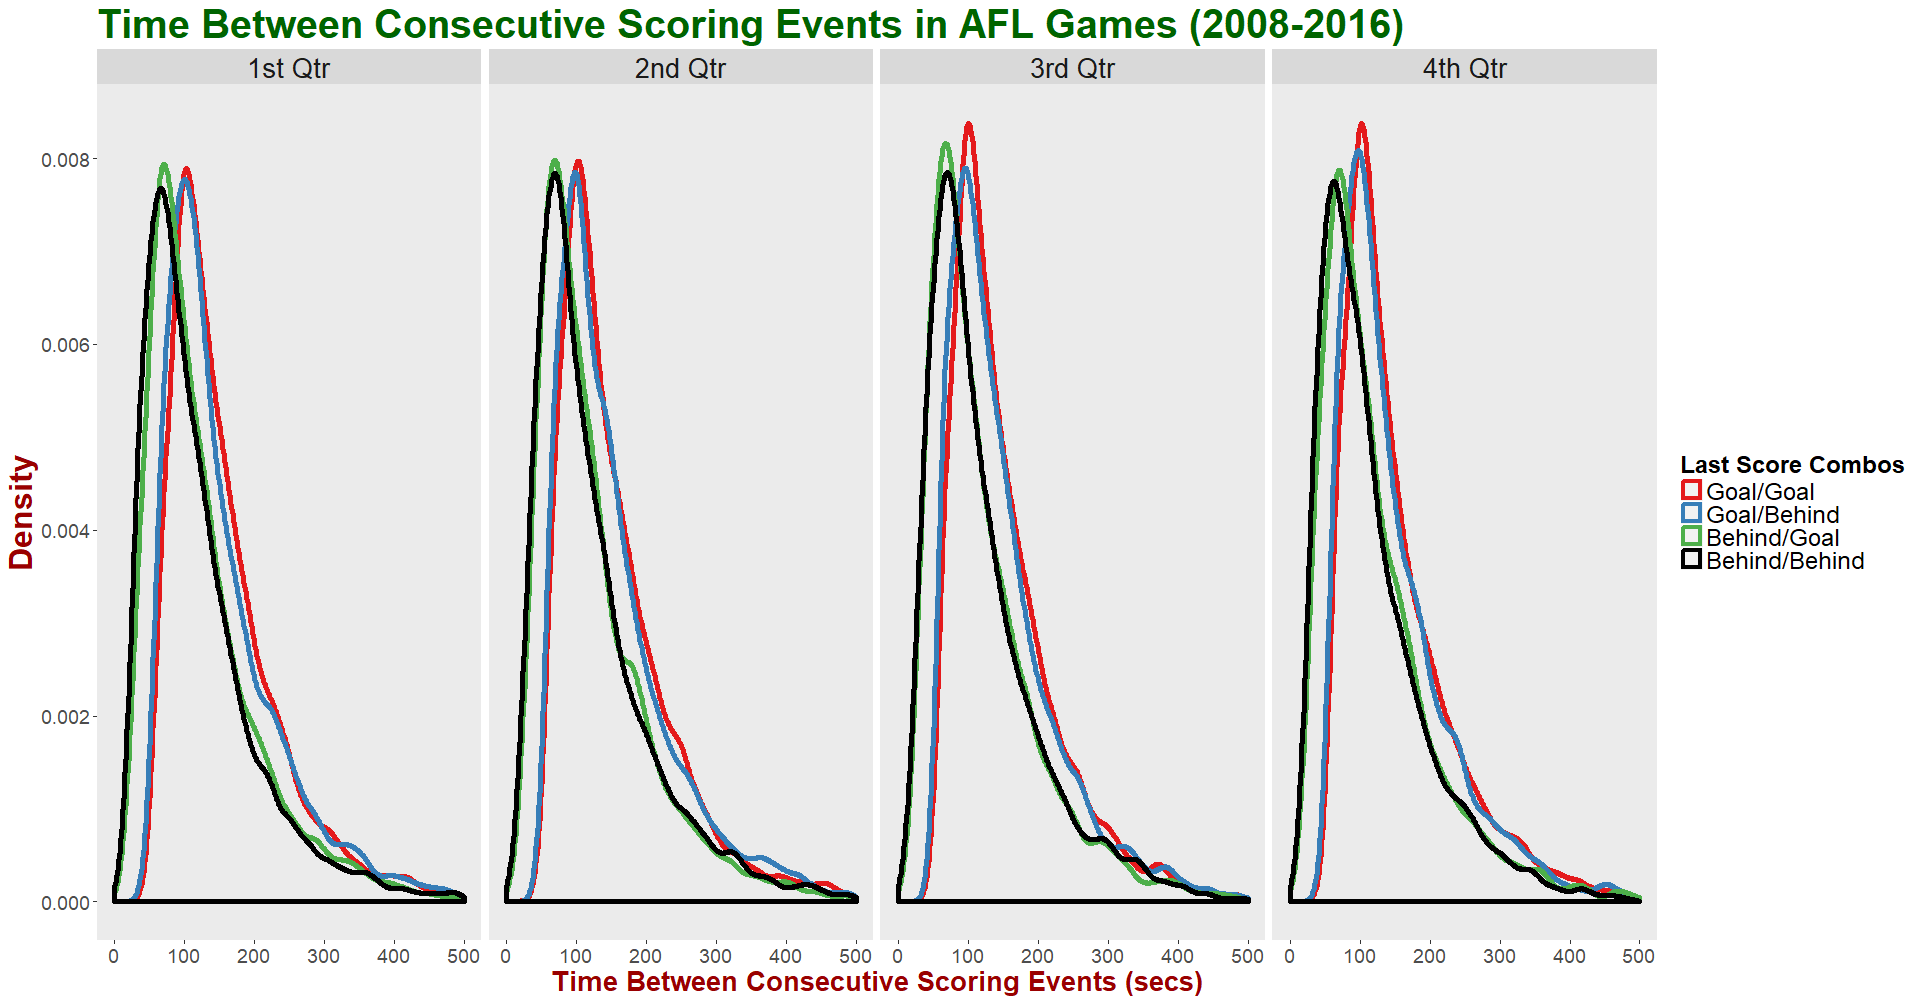 Time Between Scores - Facet by Qtr and Group by Score Combos.png